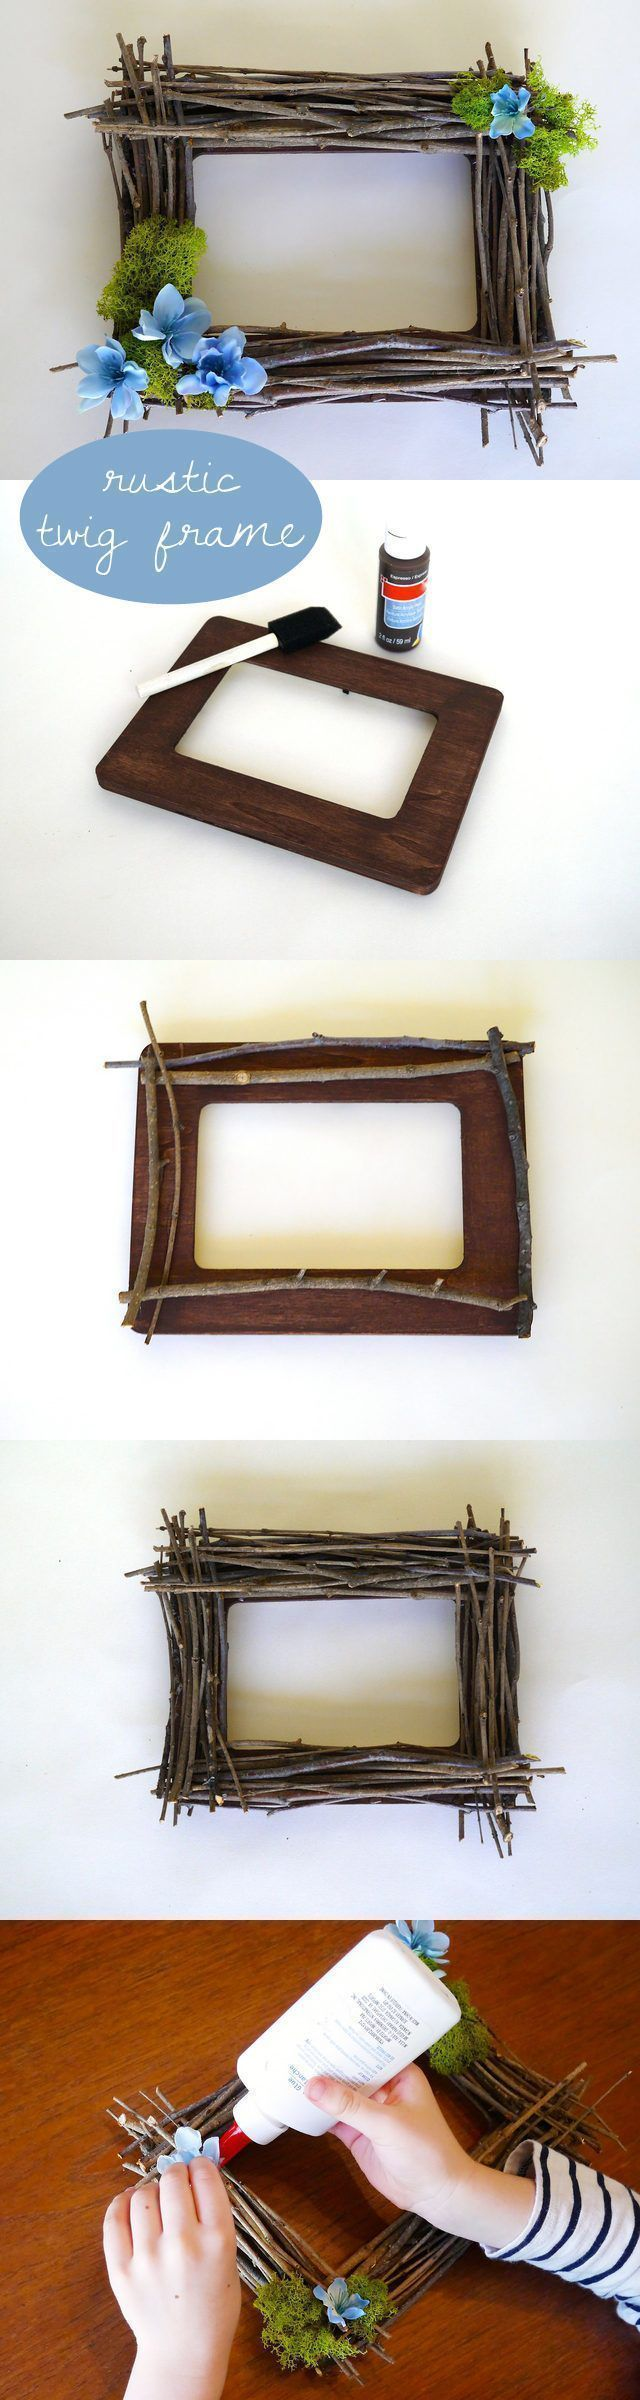 310 best Fun DIY Projects images on Pinterest | Bricolage, Diy fall ...